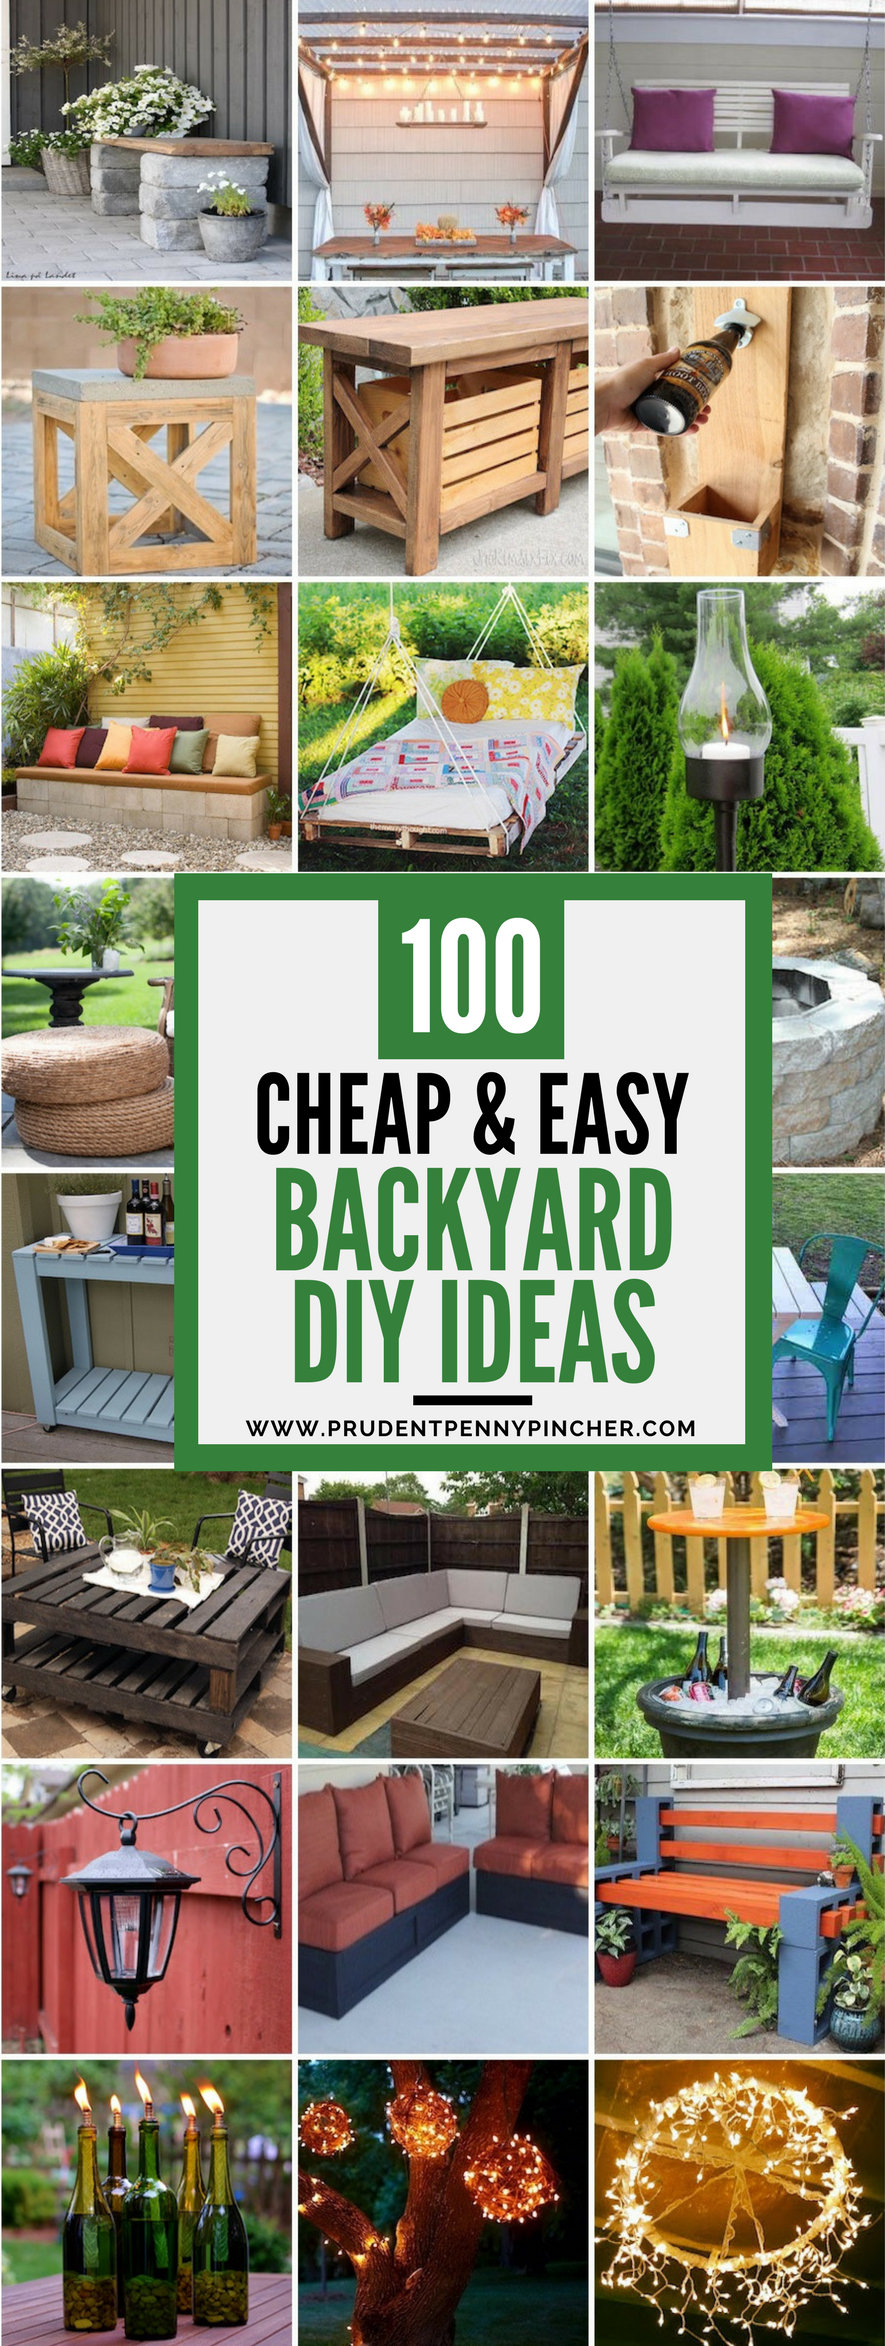 100 Cheap and Easy DIY Backyard Ideas - Prudent Penny Pincher on Affordable Backyard Ideas id=61349